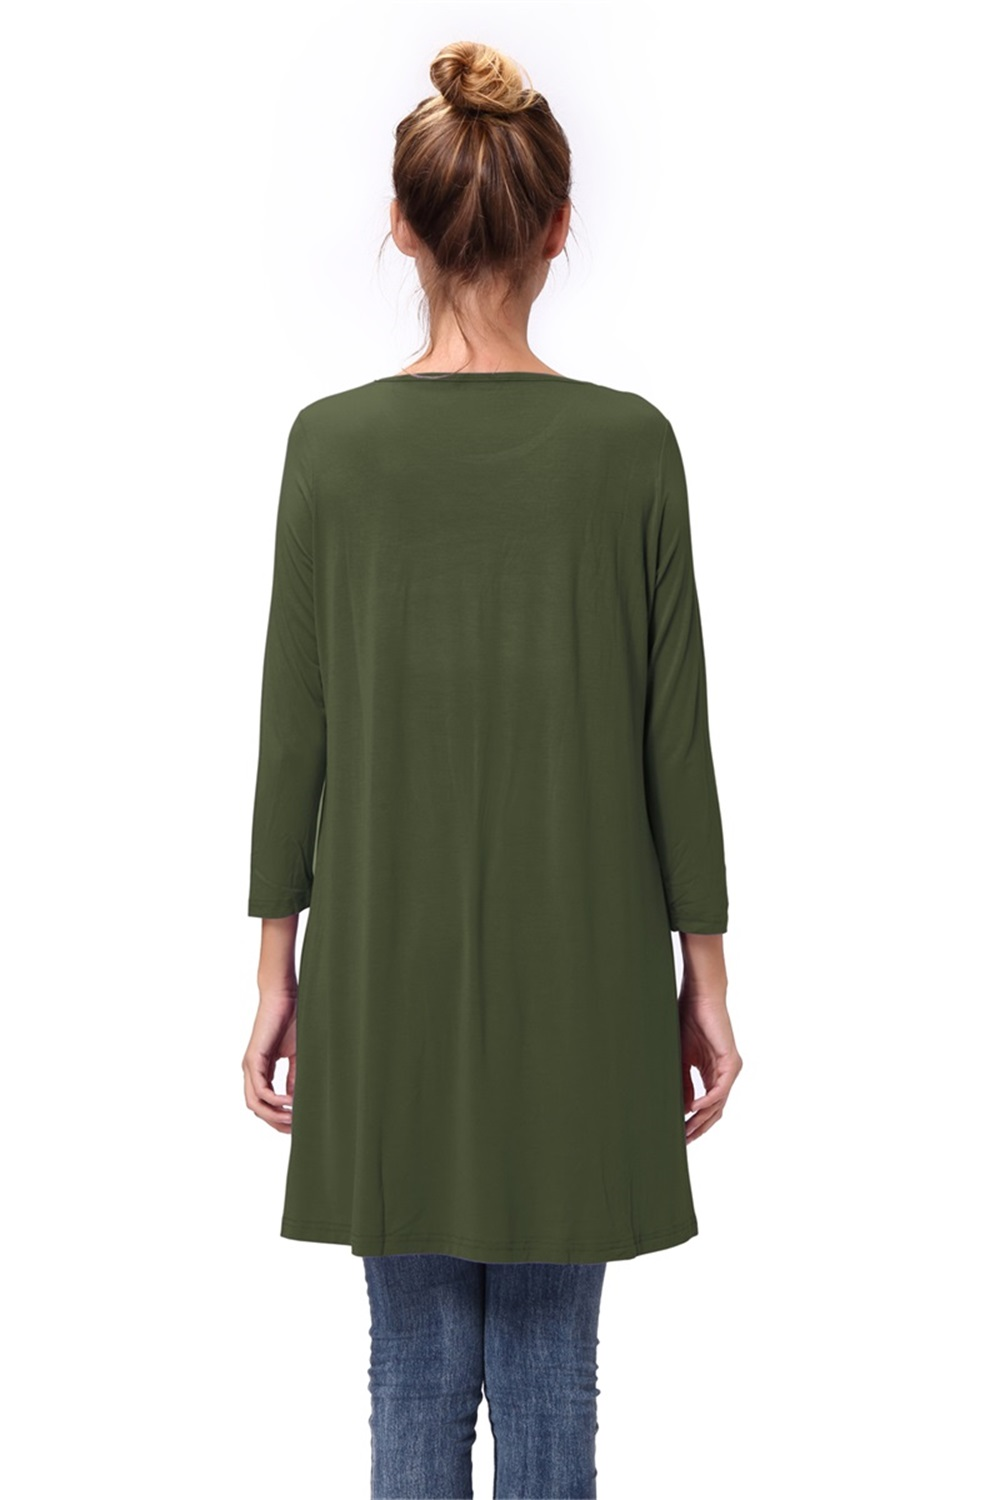 Women-Casual-Round-Neck-3-4-Long-Sleeve-Trapeze-Tunic-Top-Lady-Loose-Fit-Dress thumbnail 8